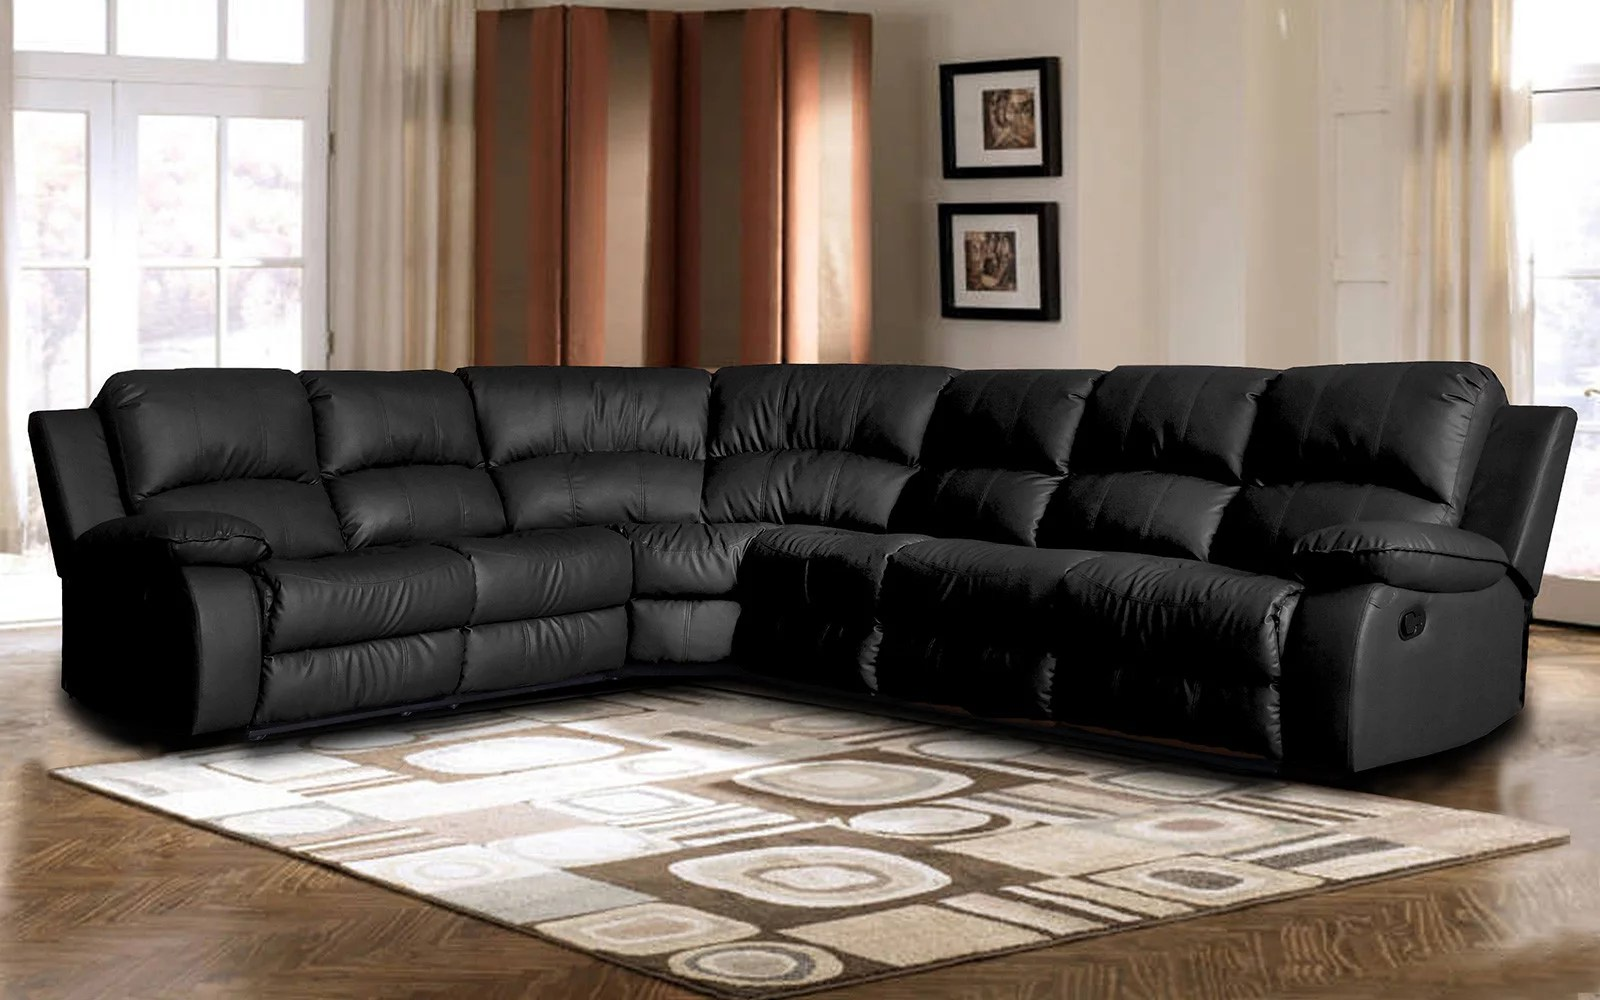 Leather Sectional Sofa Recliner Classic Oversize And Overstuffed Corner Bonded Leather Sectional With 2 Reclining Seats